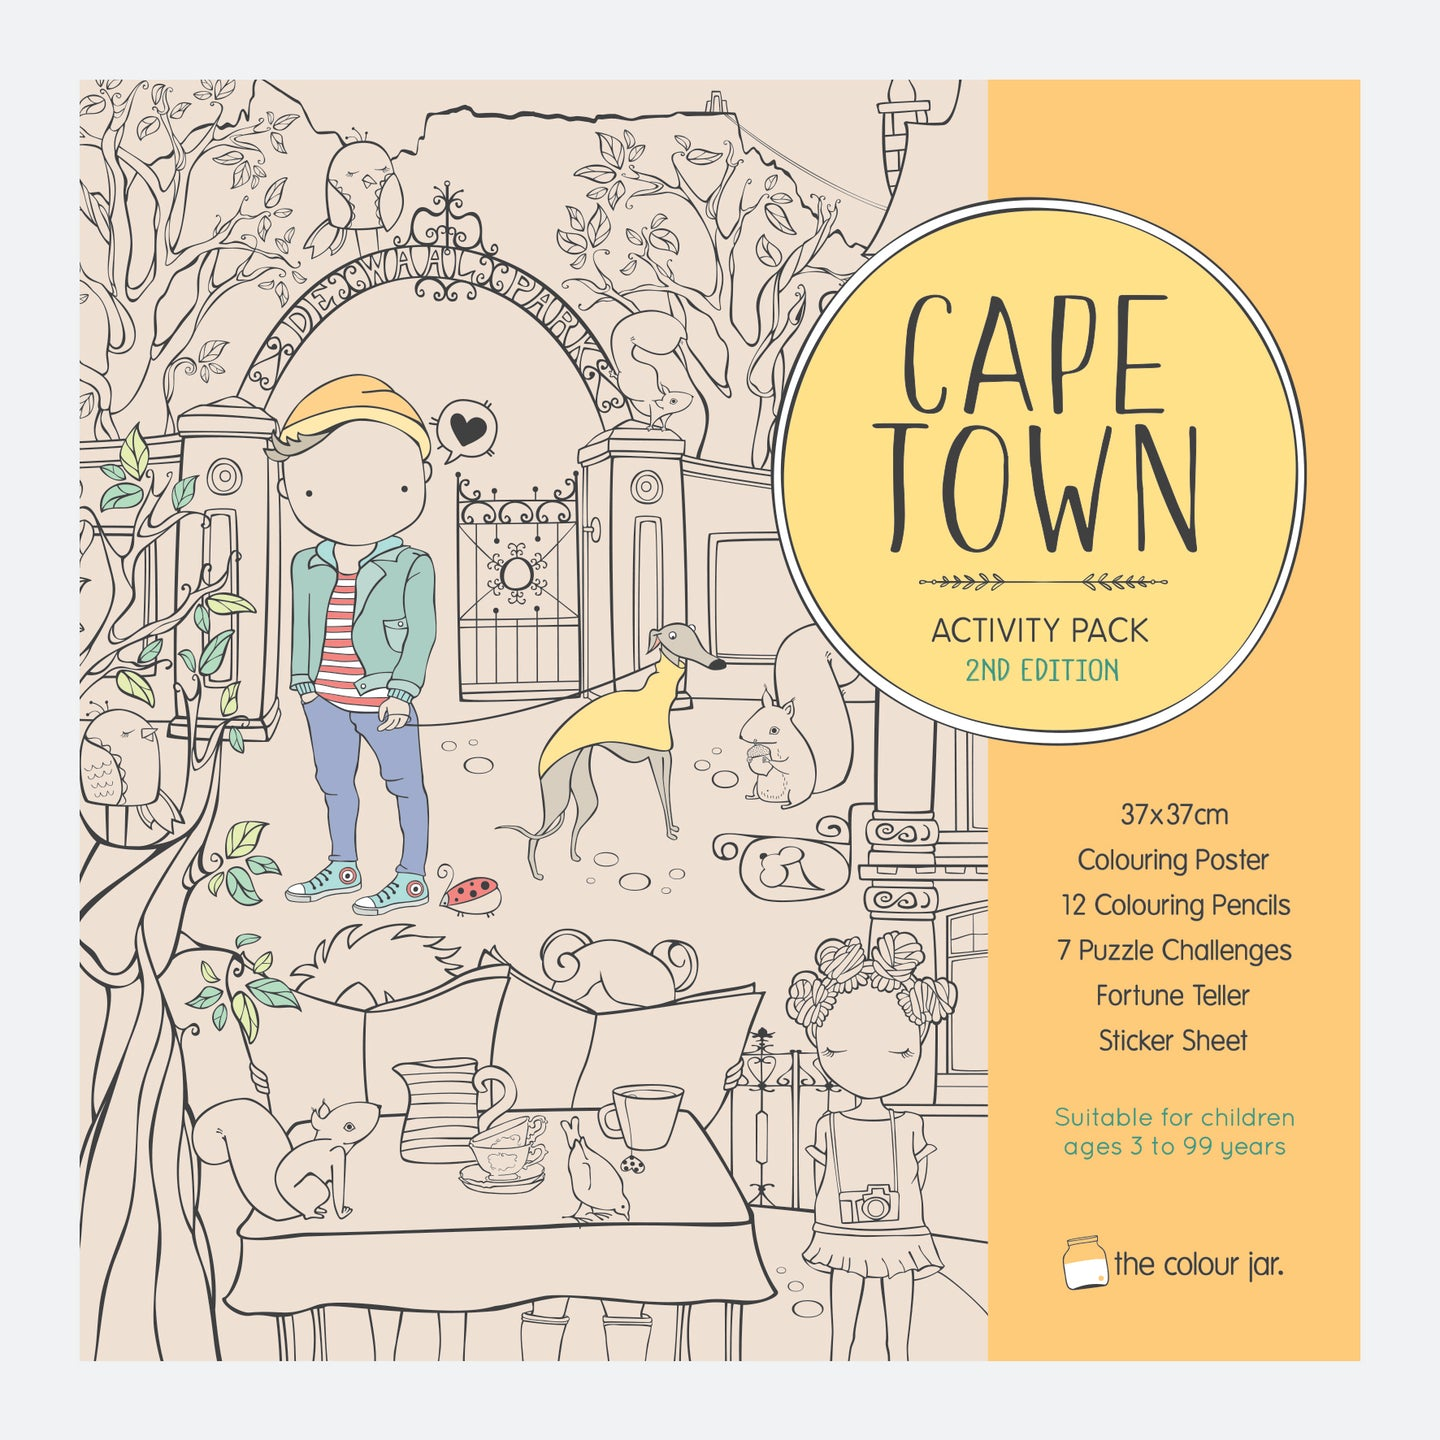 Cape Town Activity Pack